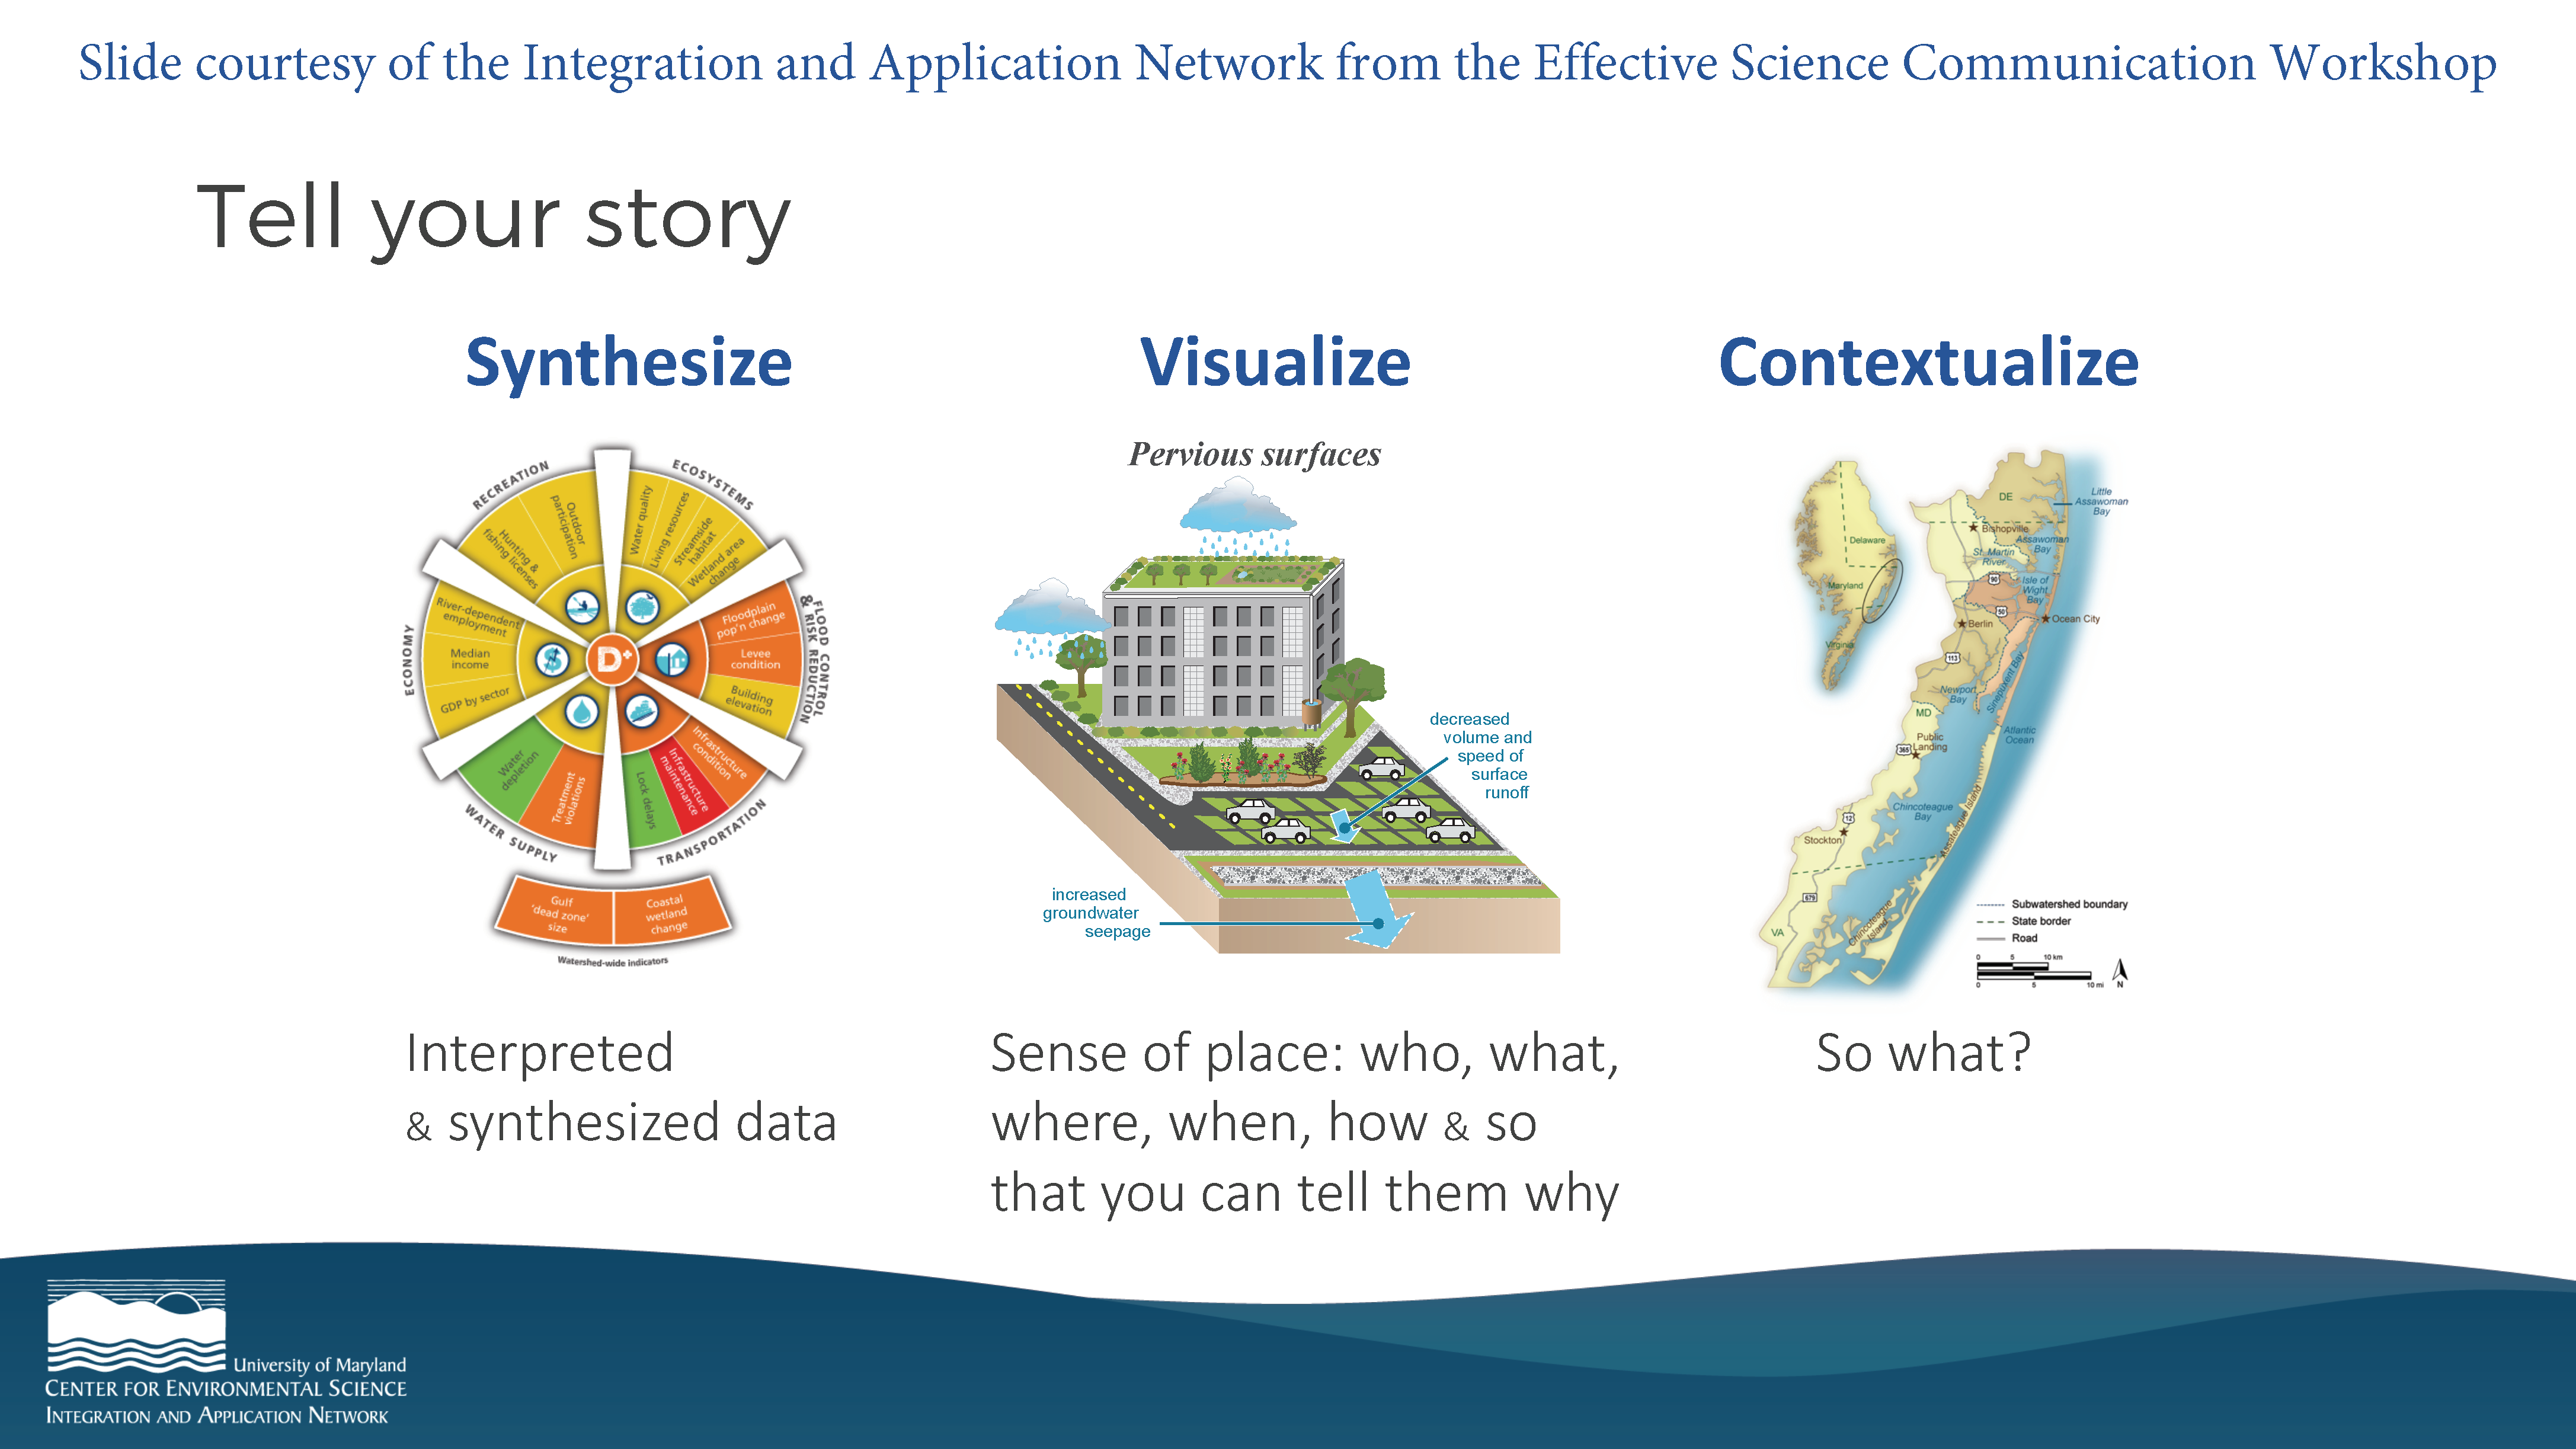 slide from science communication workshop: Tell your story - synthesize, visualize, contextualize